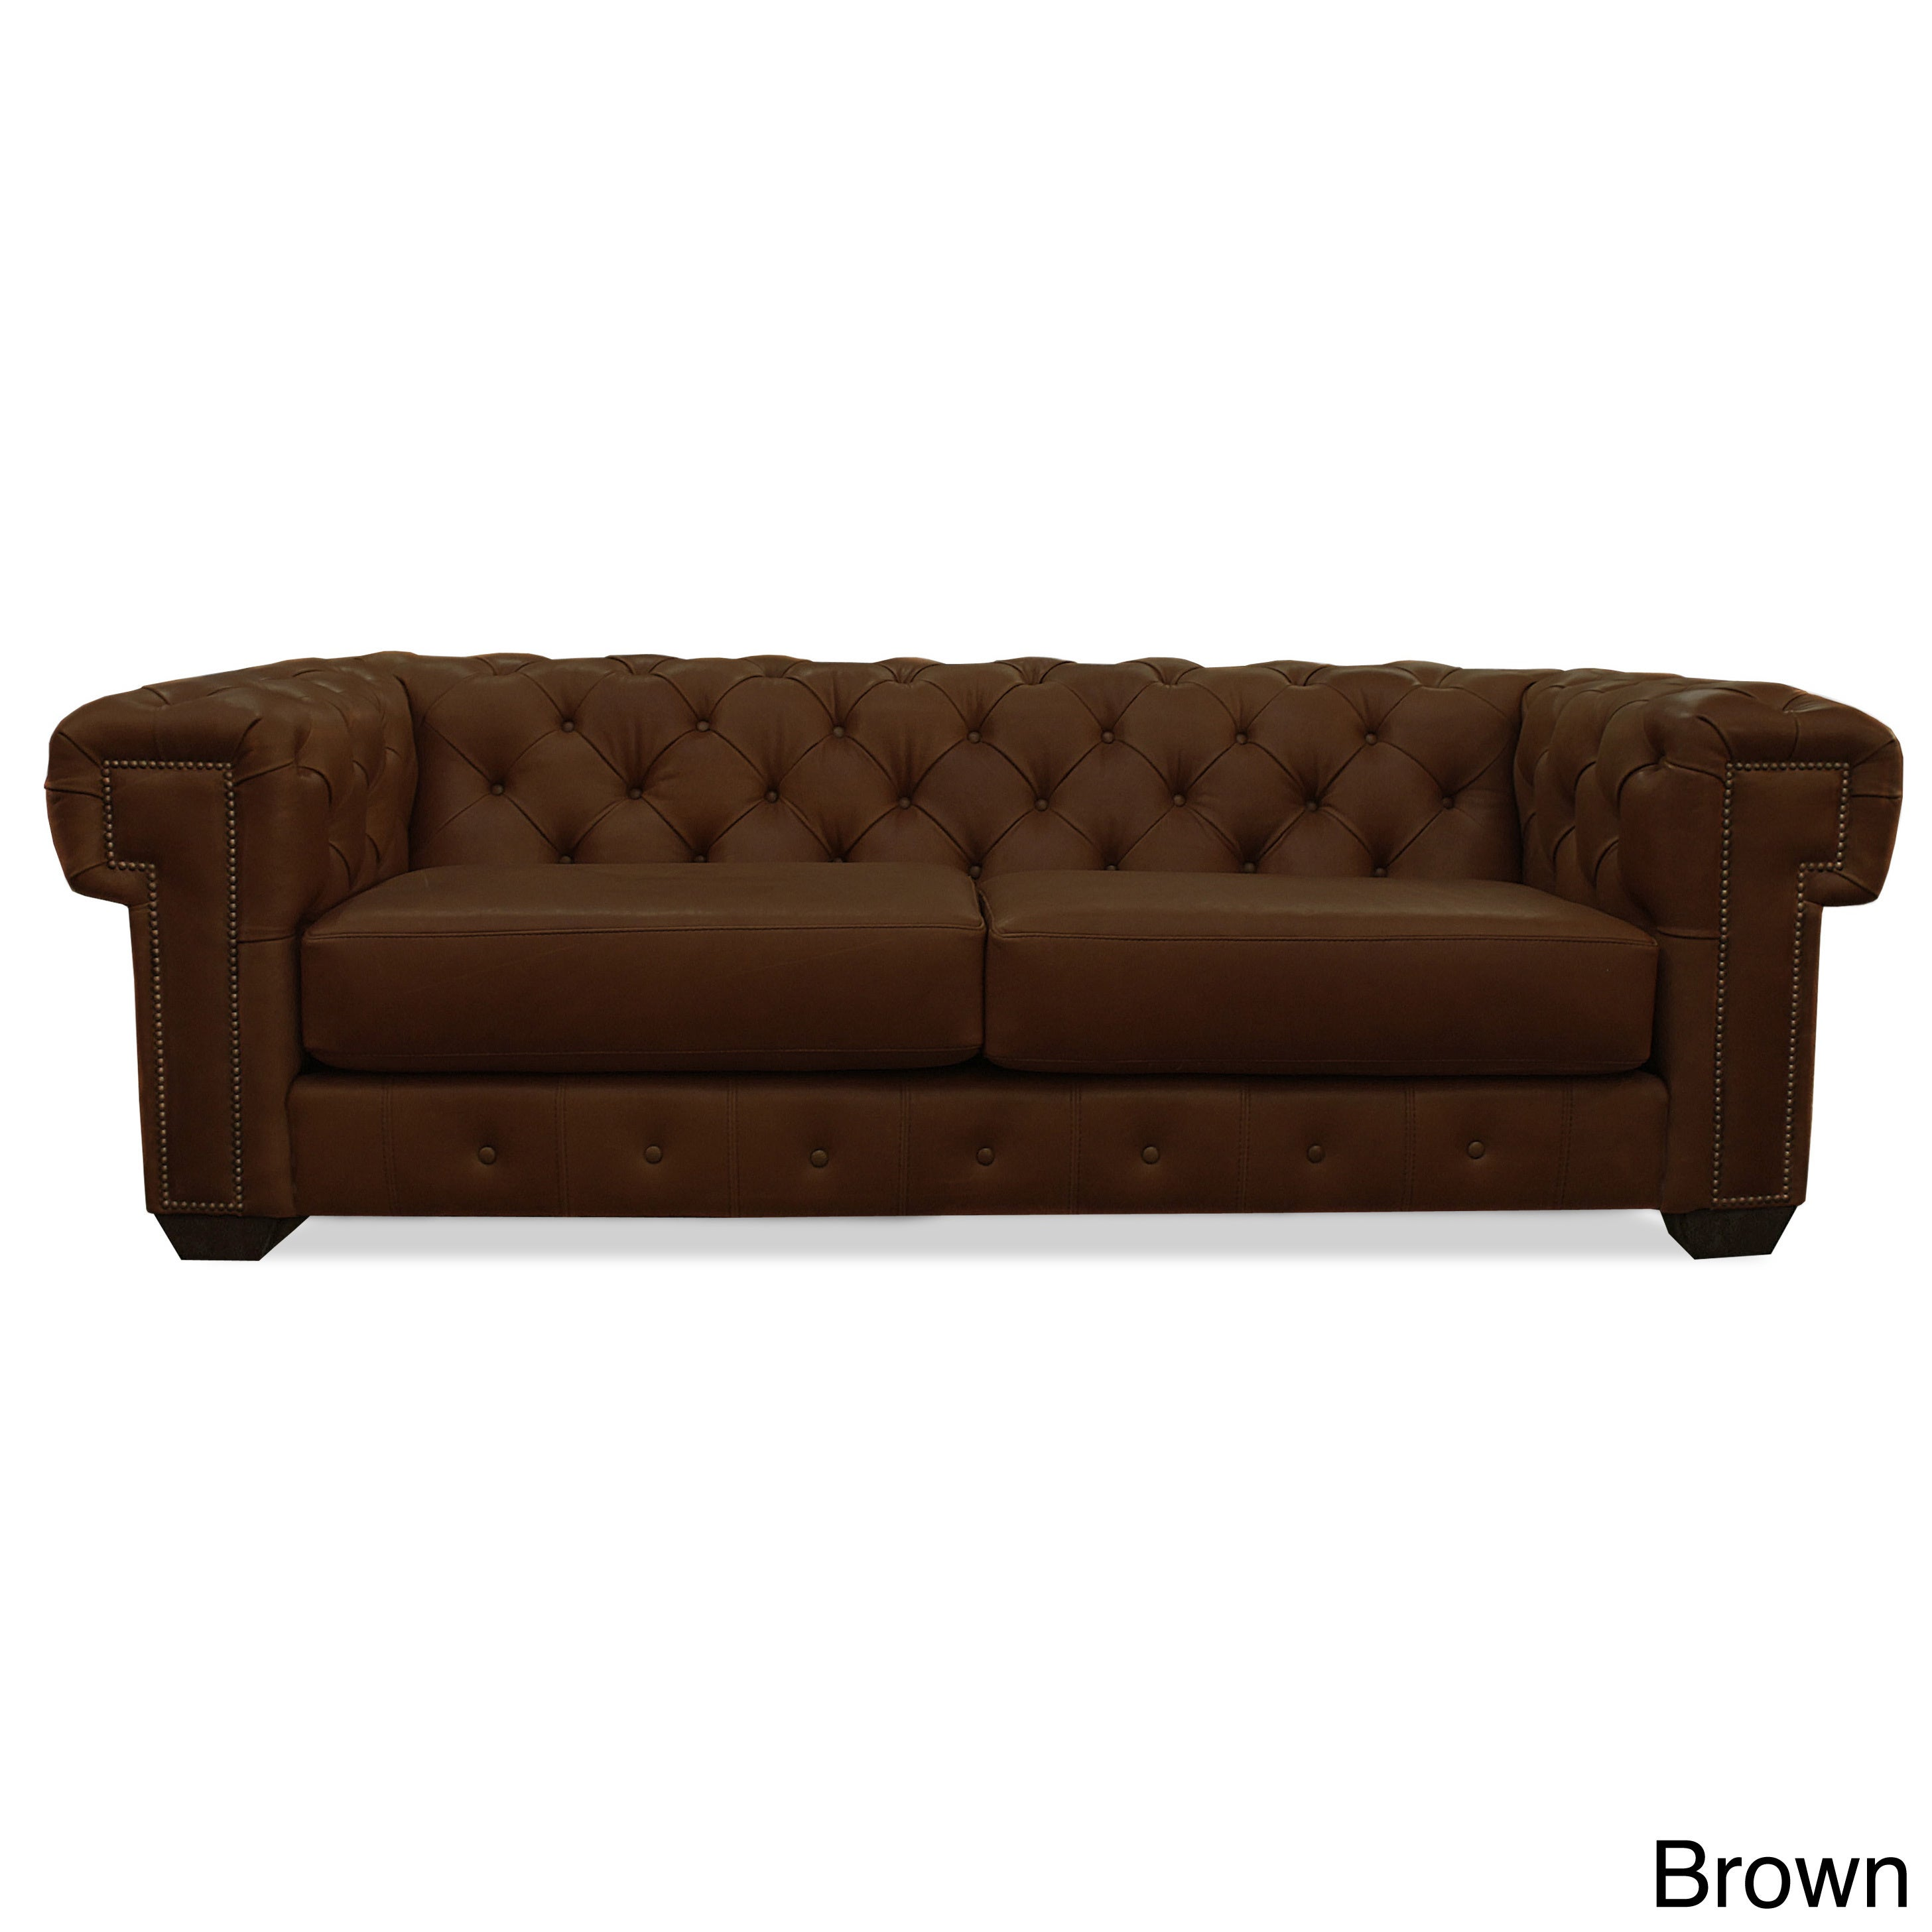 - Shop Charles Chesterfield Leather Tufted Sofa - Overstock - 12144531